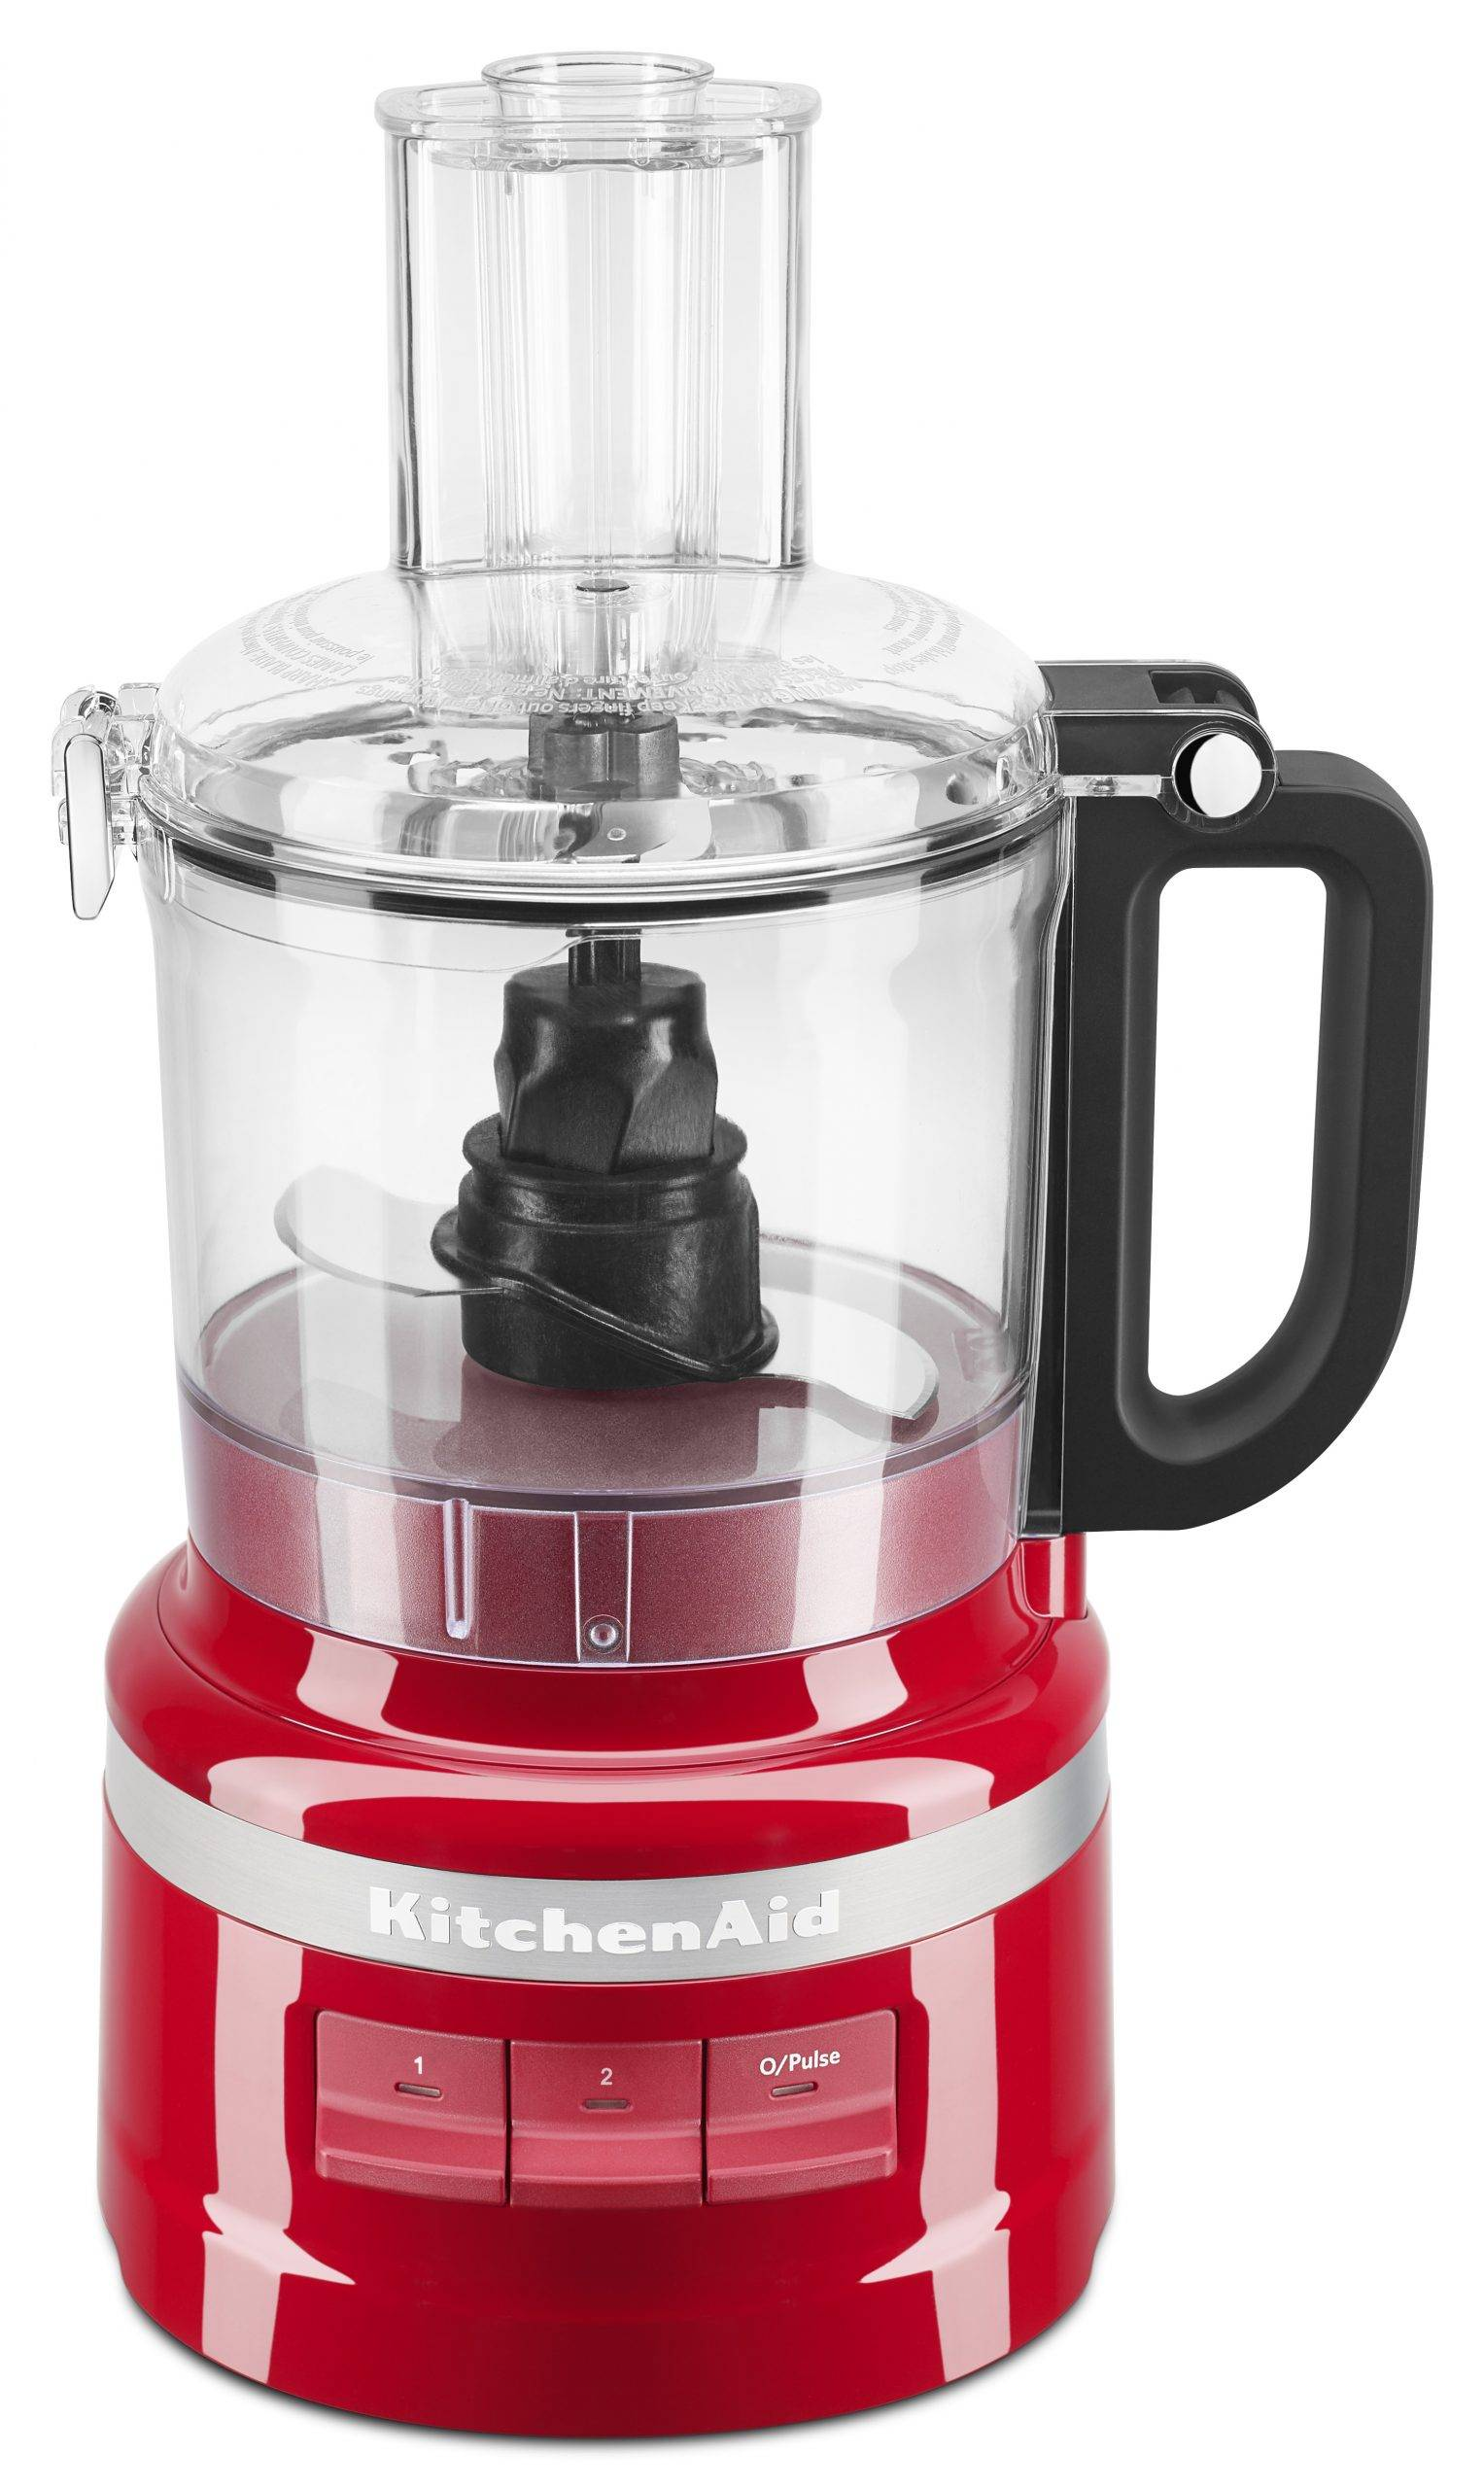 KitchenAid Food Processor miree Verlosung trickytine